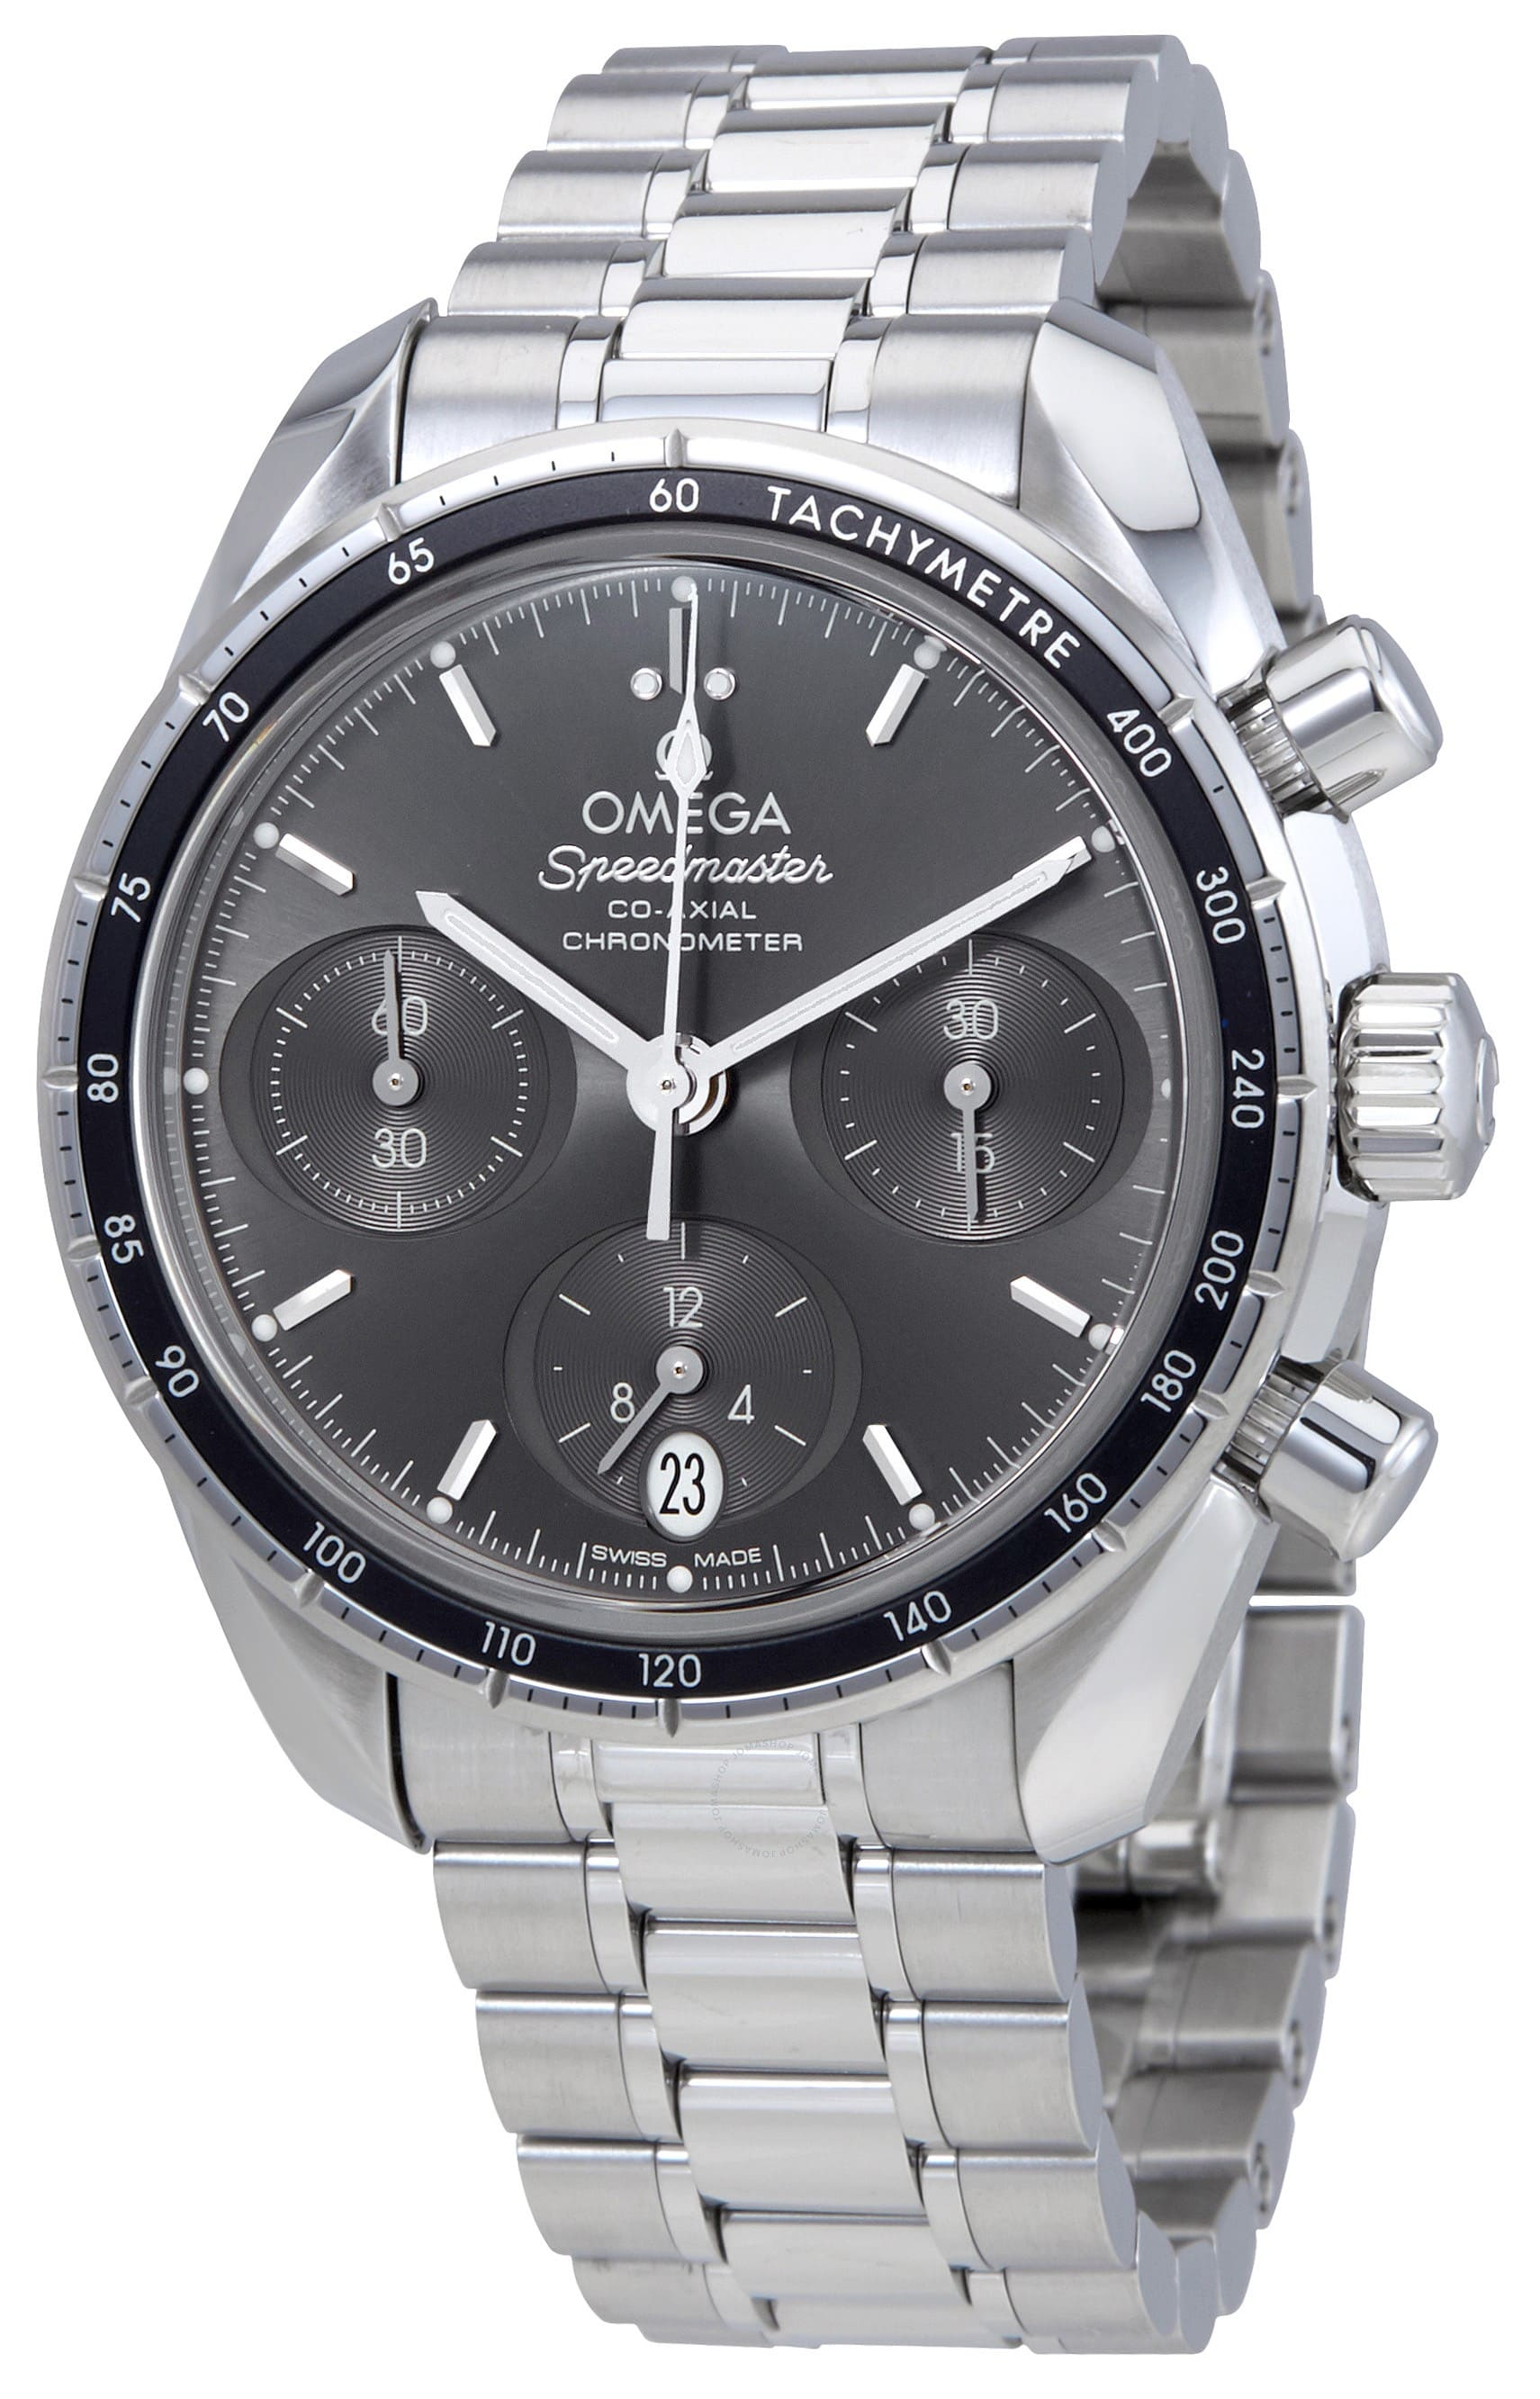 Omega Speedmaster Co-Axial Automatic Men's Chronograph Watch for $3400